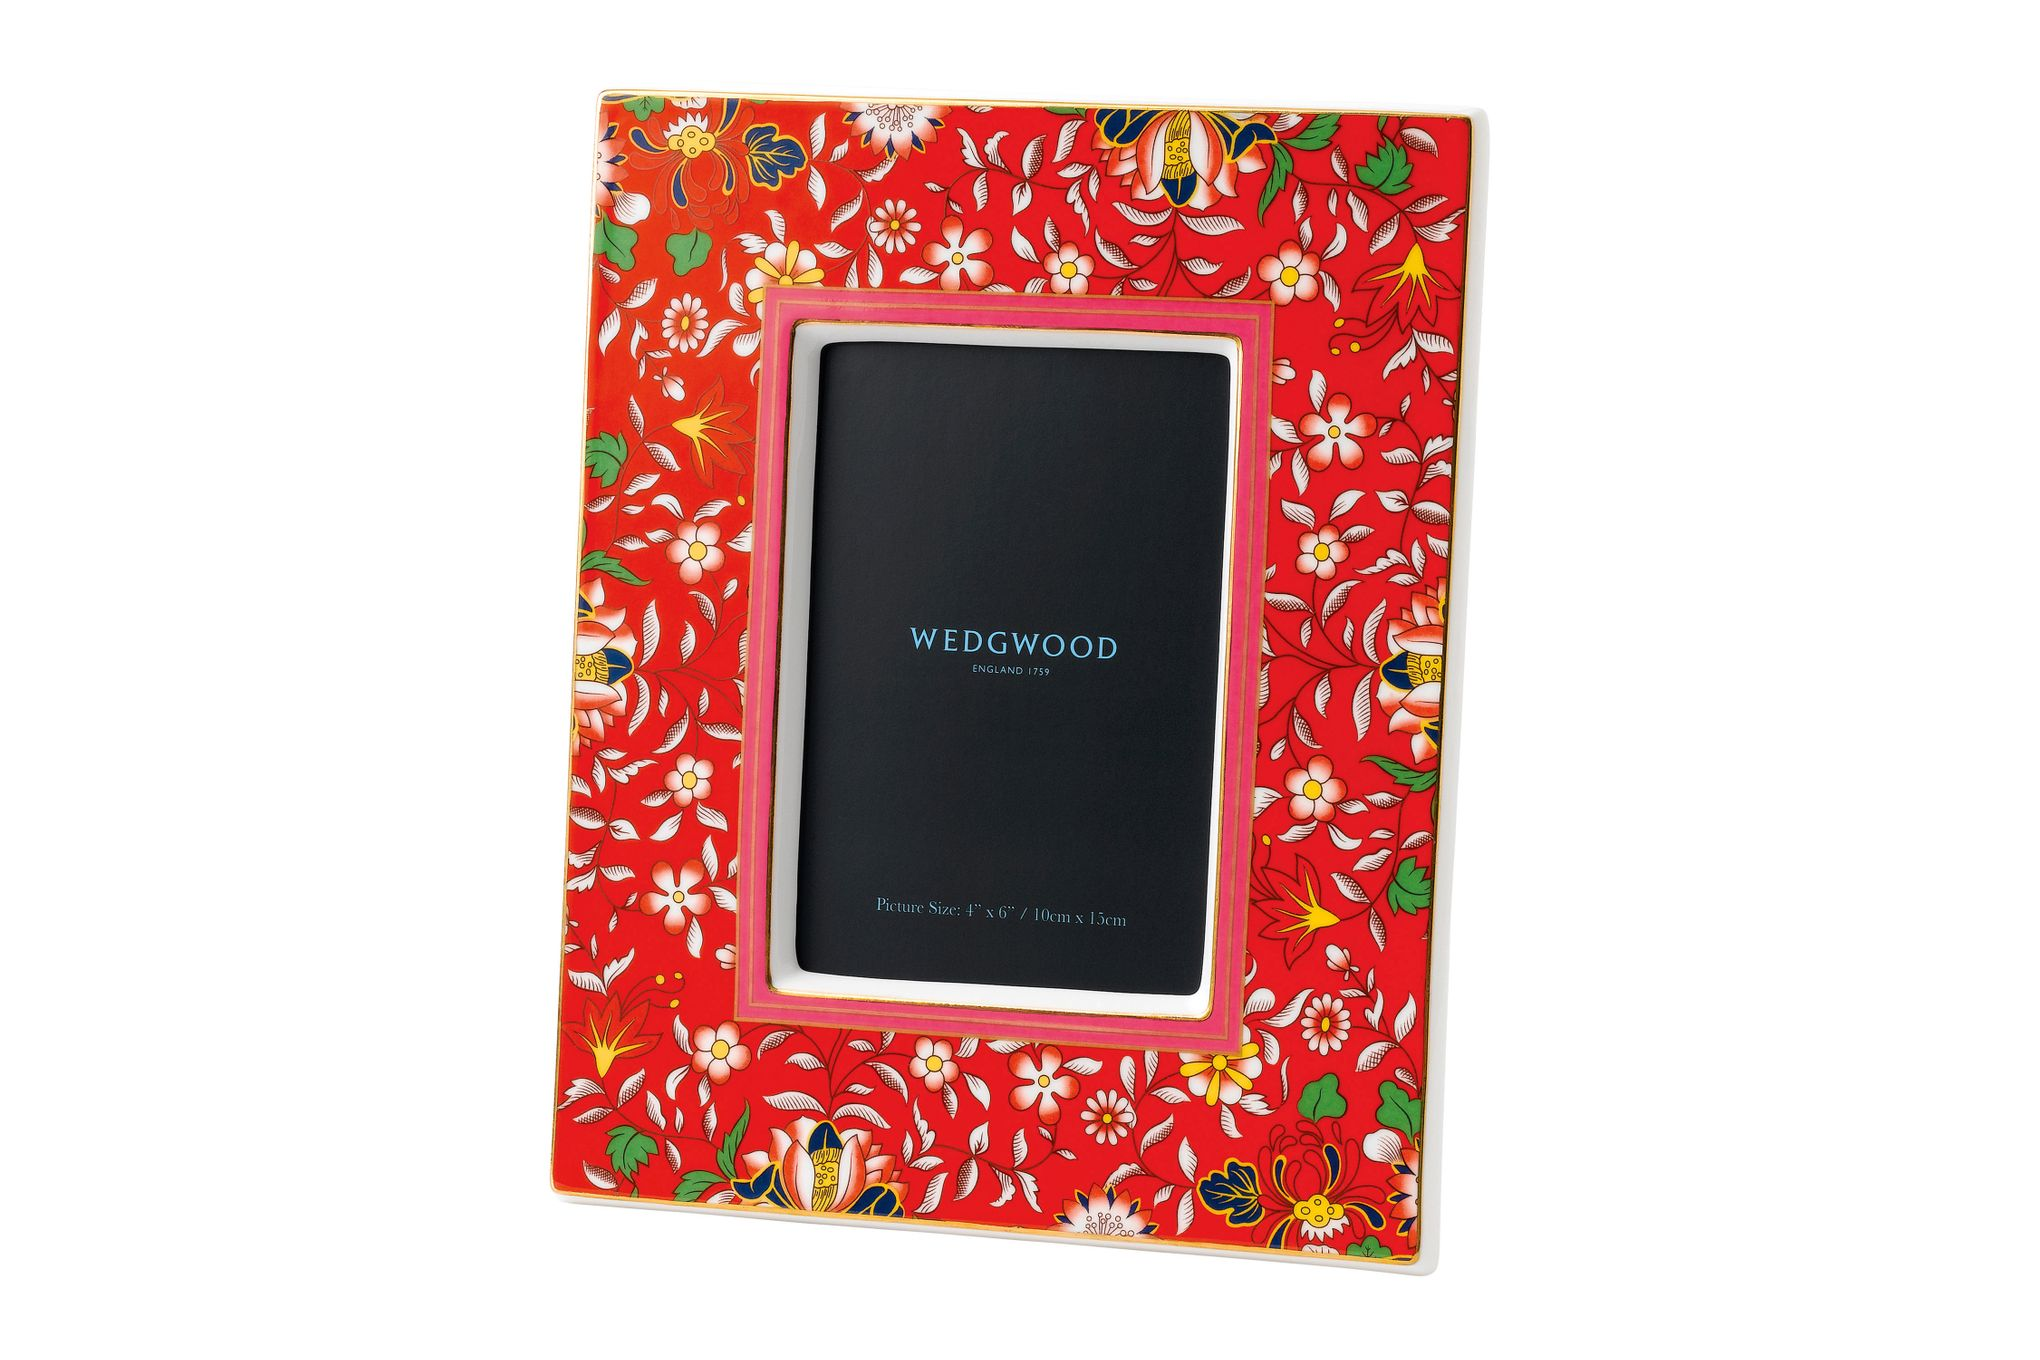 "Wedgwood Wonderlust Photo Frame Crimson Jewel - Boxed 4 x 6"" thumb 1"